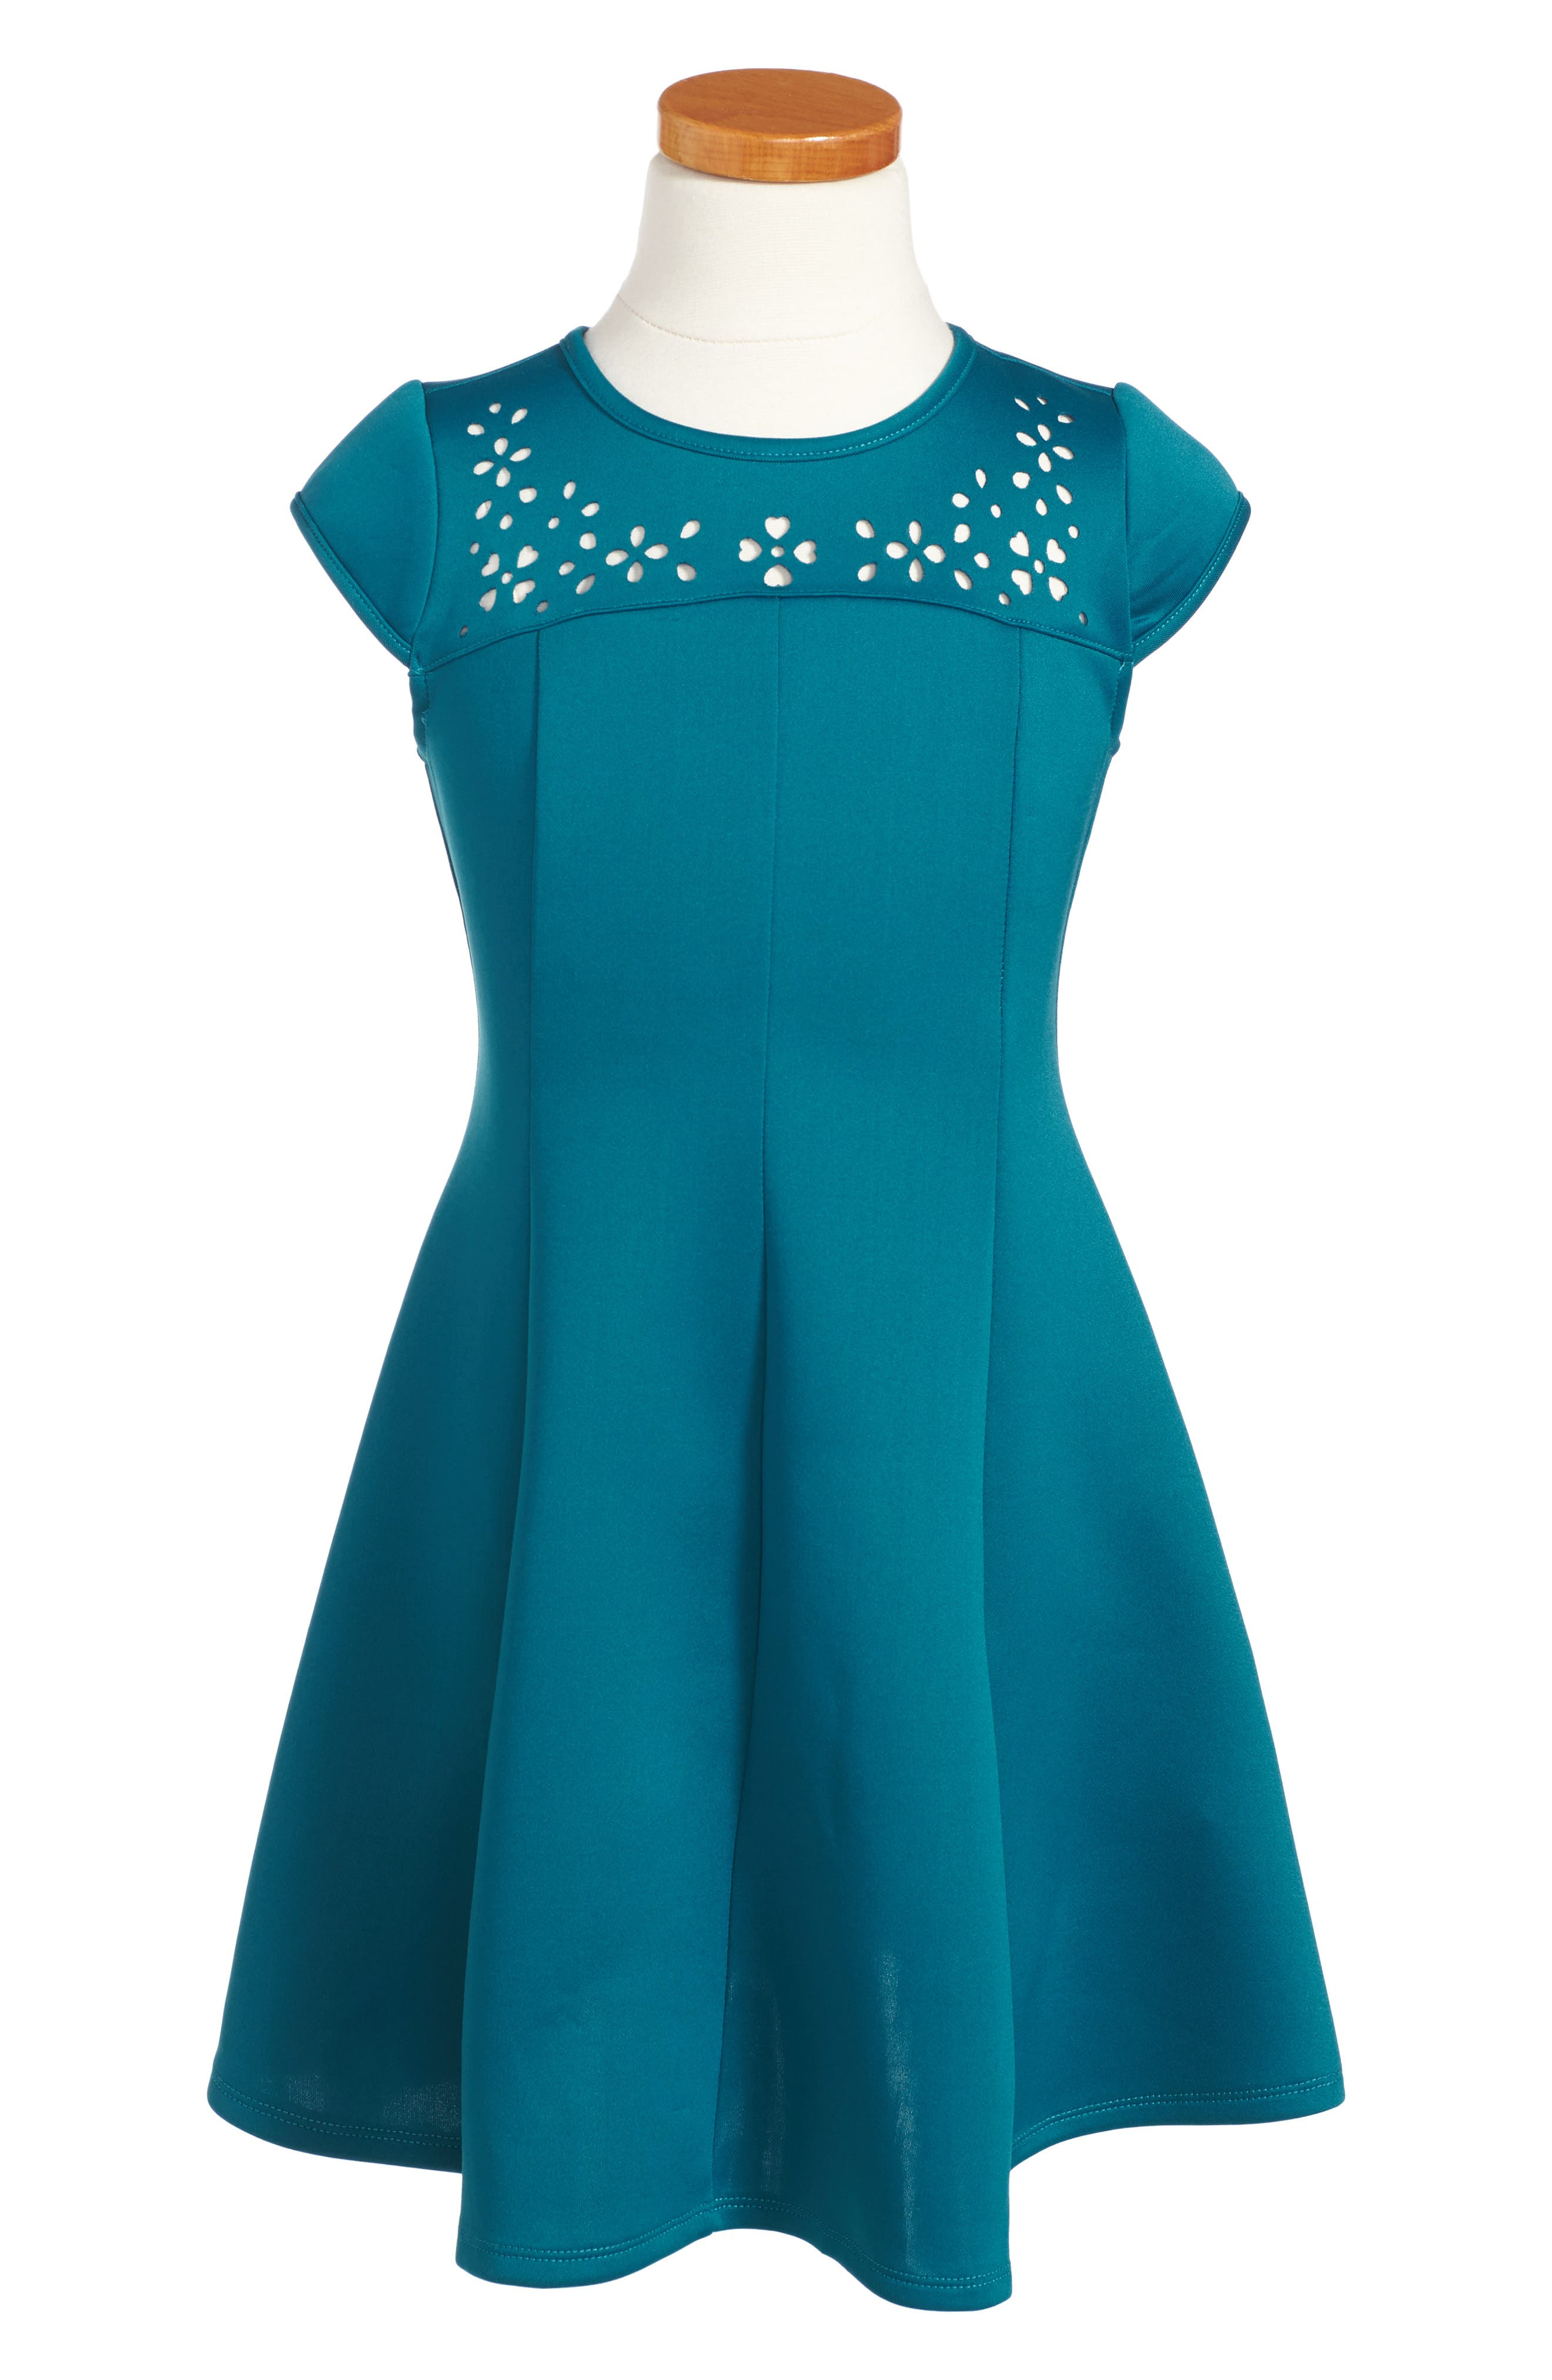 Main Image - Zunie Cutout Scuba Dress (Toddler Girls, Little Girls & Big Girls)